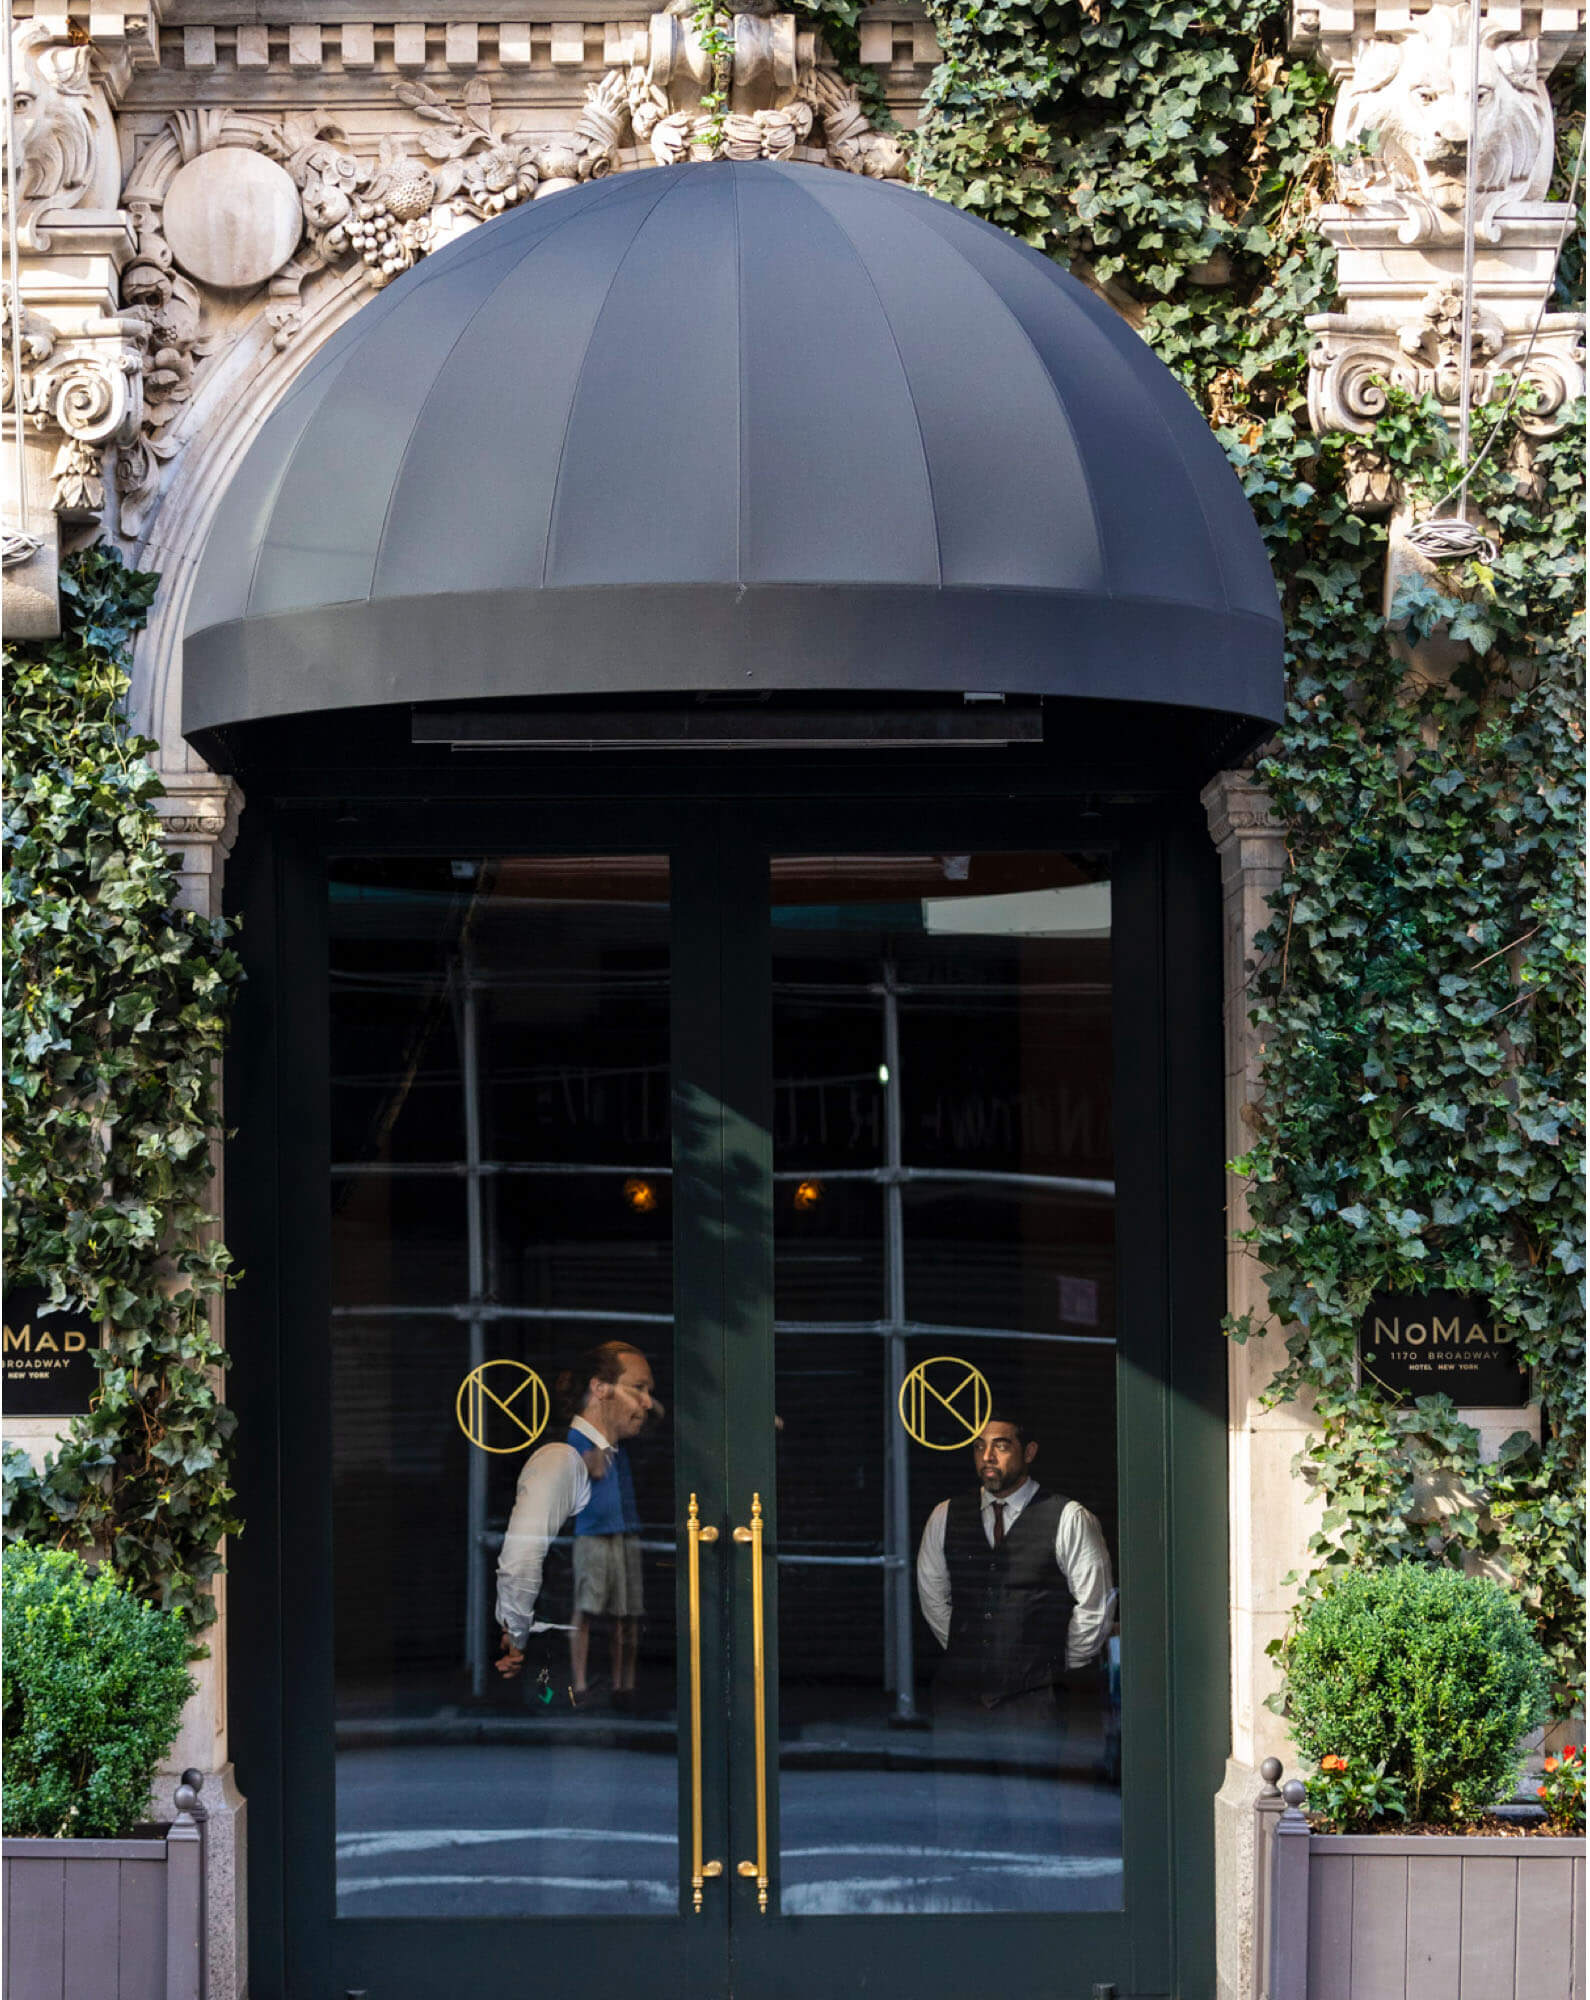 The entryway of the NoMad Hotel